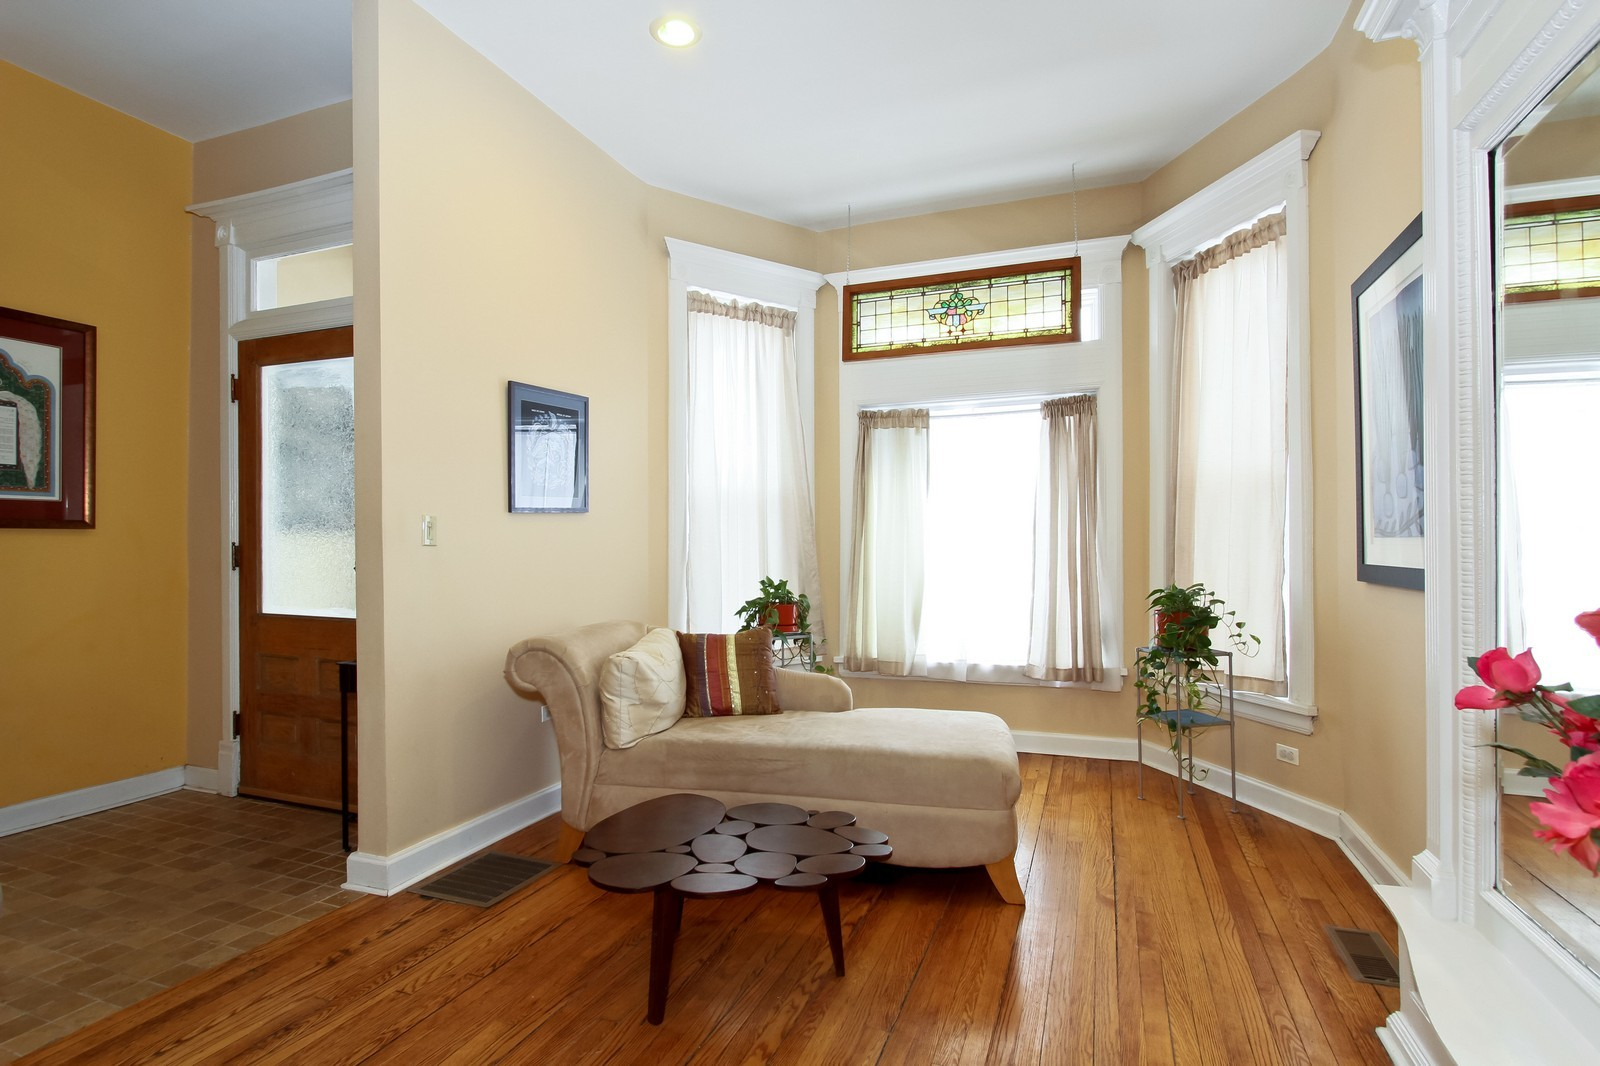 Real Estate Photography - 4805 S Langley, Chicago, IL, 60615 - Living Room